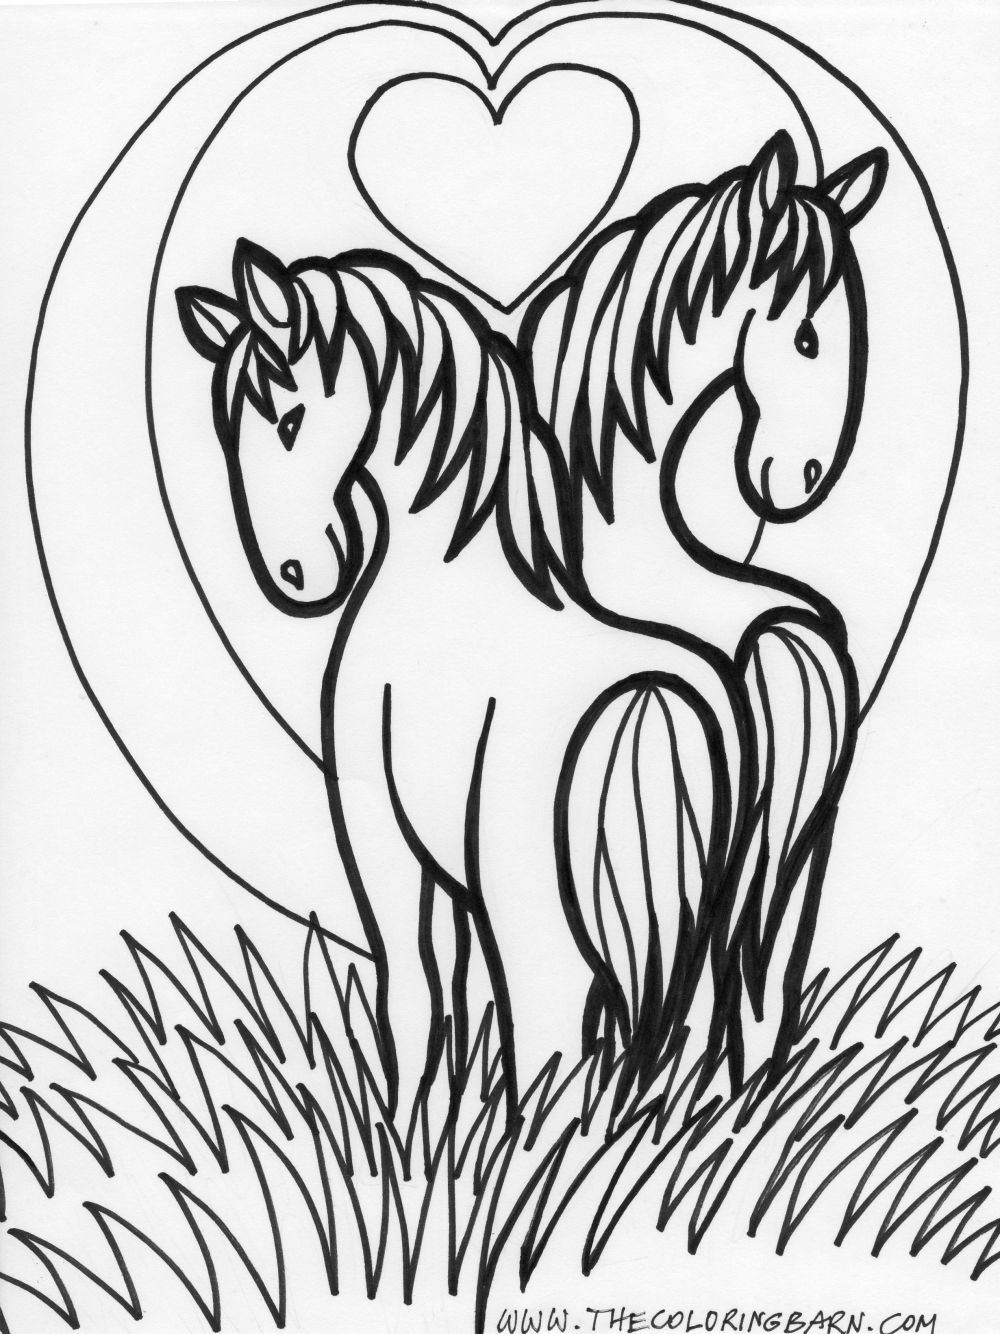 Horse coloring pages only coloring pages for Horse coloring pages printable free